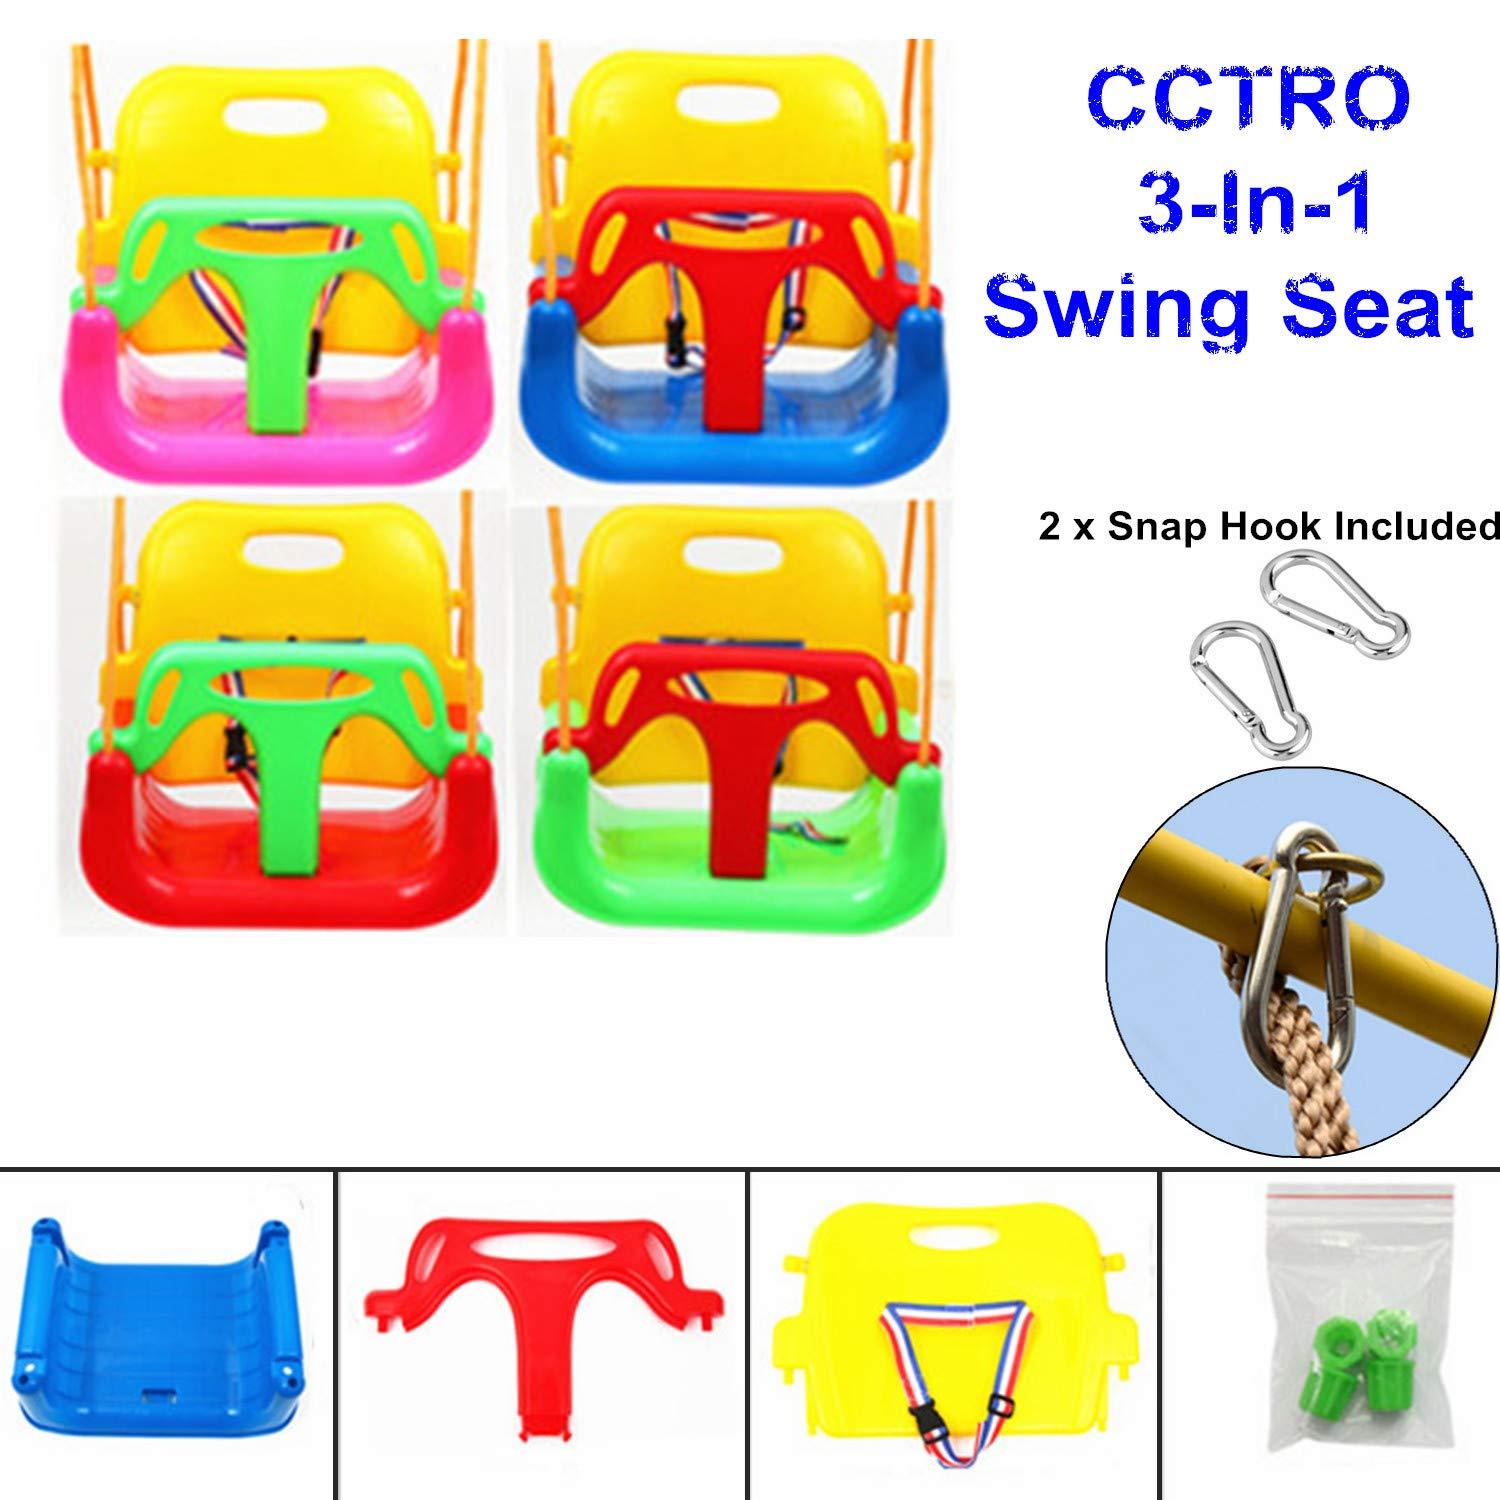 CCTRO 3 in 1 Swing Seat, Toddler Infants to Teens High Back Full Bucket Heavy Duty Chain Detachable Playground Jungle Gym Secure Hanging Swing Seat Set for Children Indoor Outdoor Patio by CCTRO (Image #5)